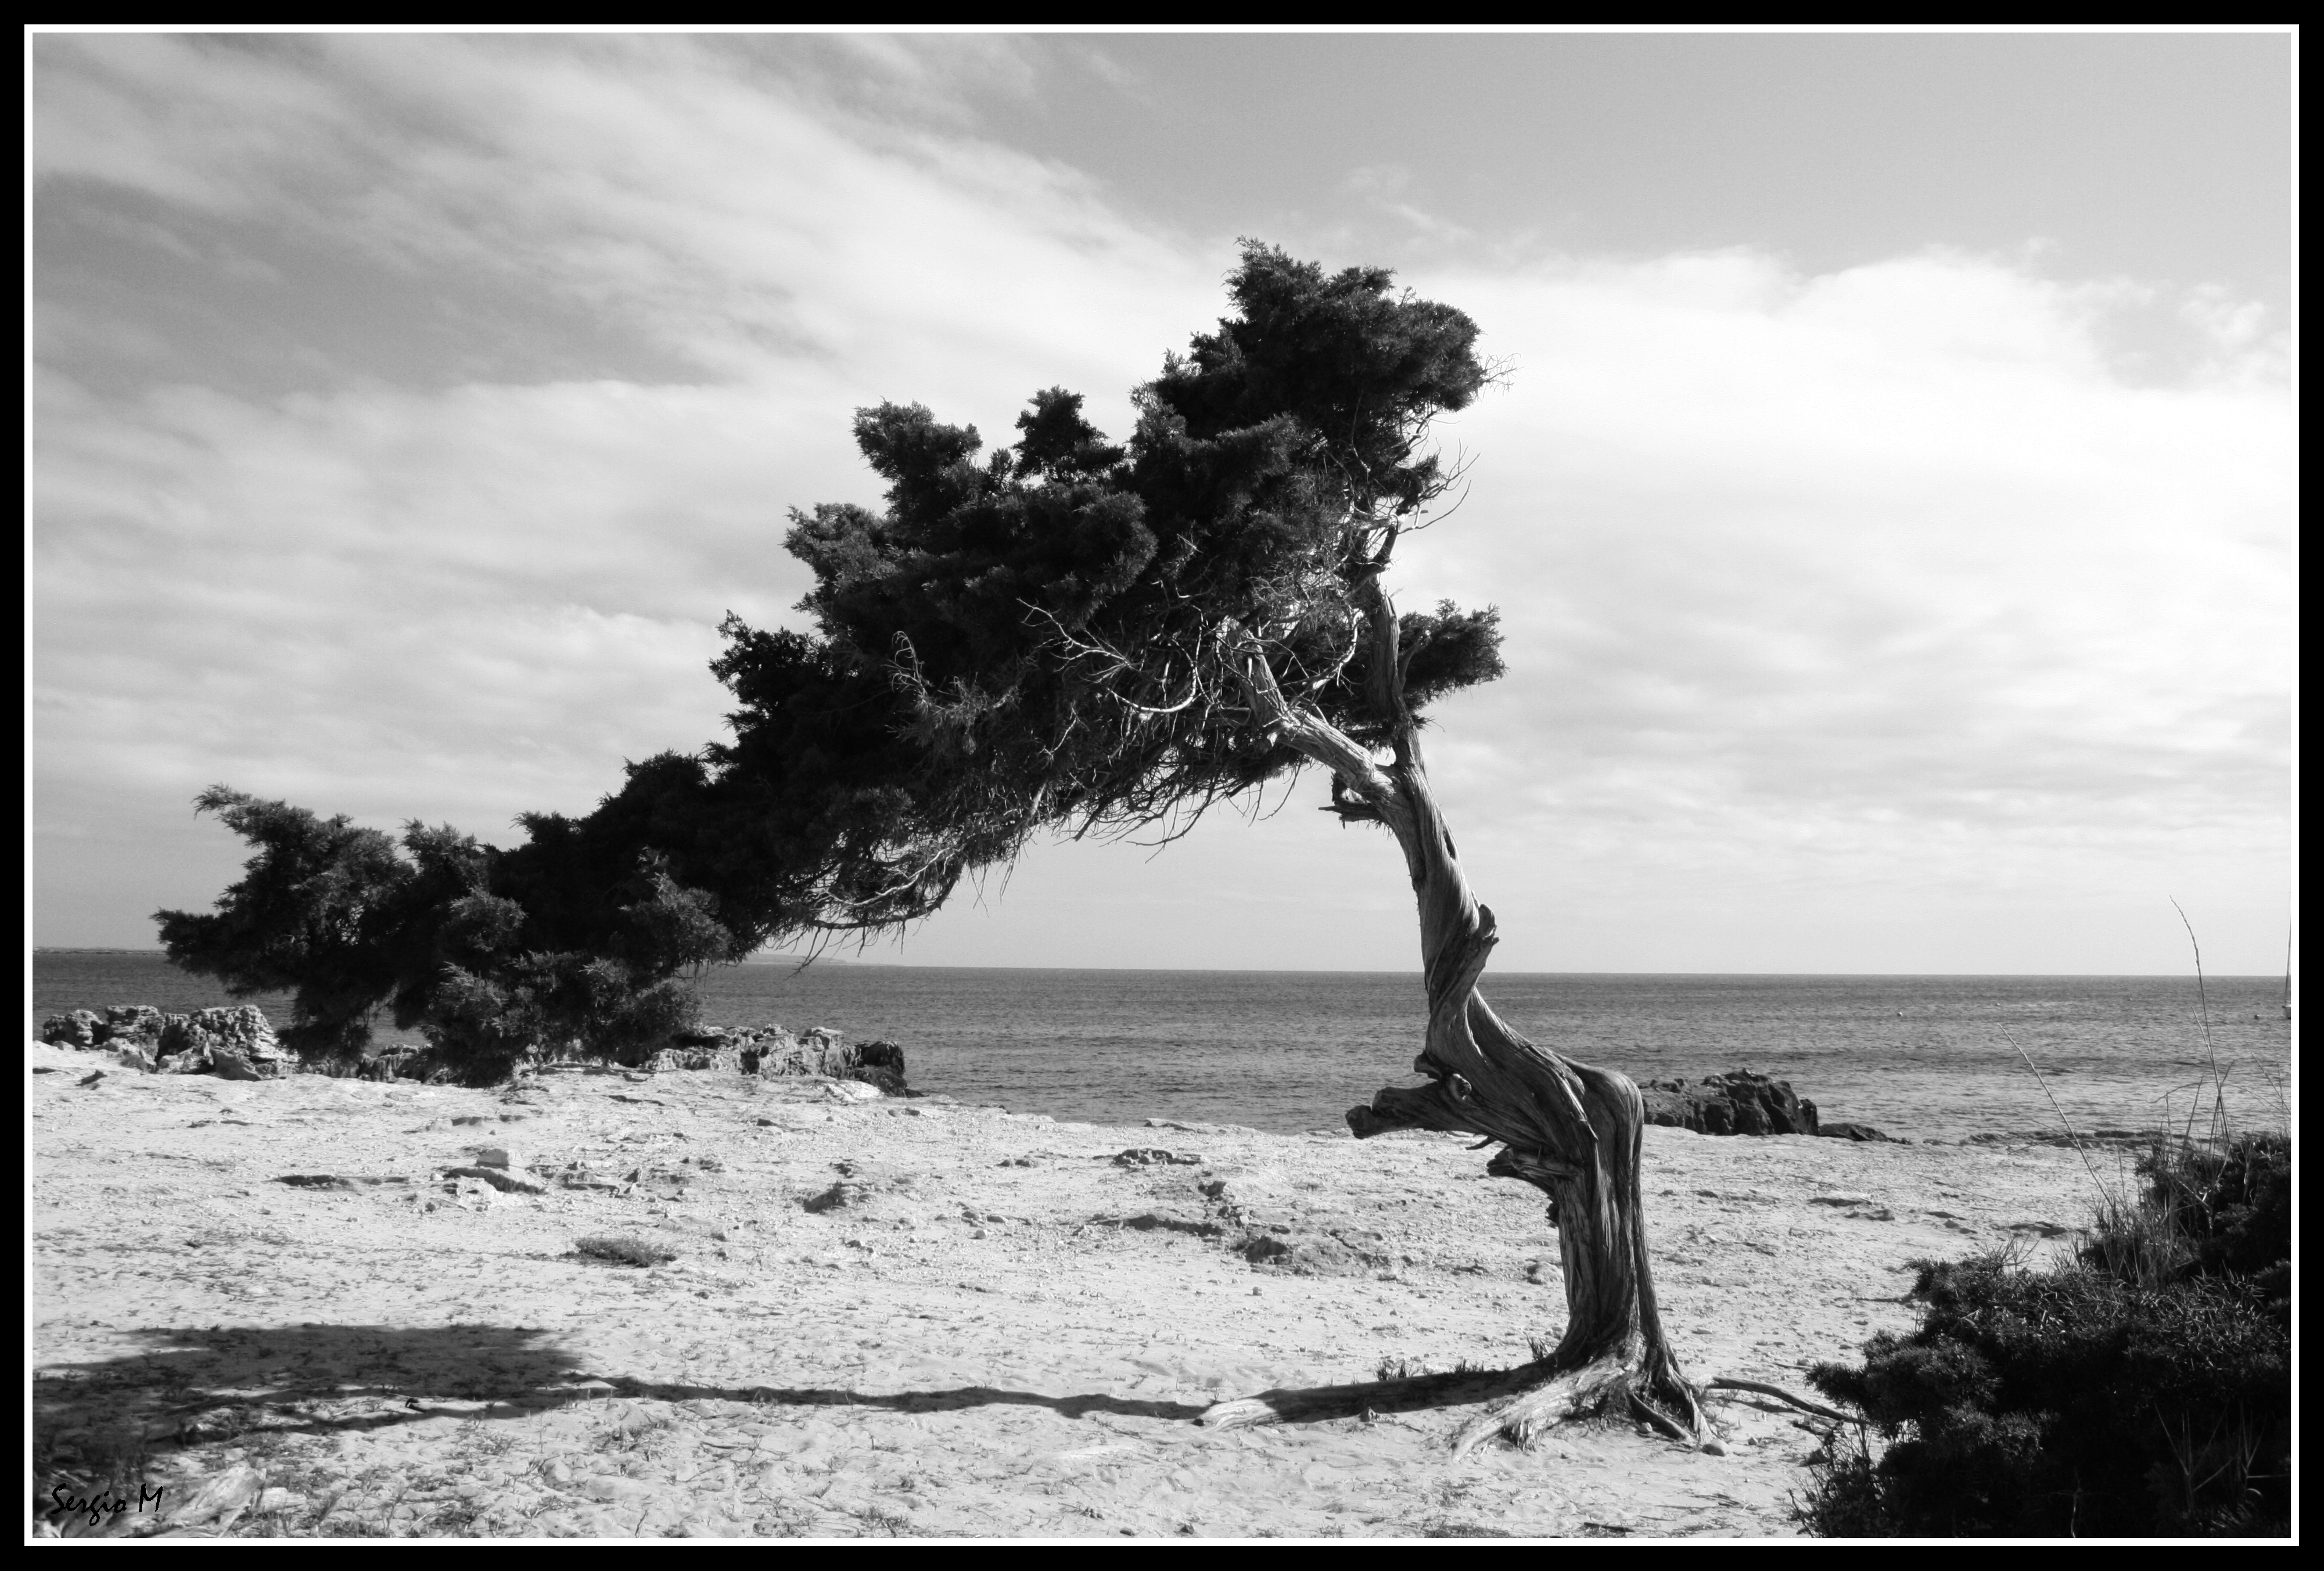 Foto playa Es Cavallet. The Joshua Tree